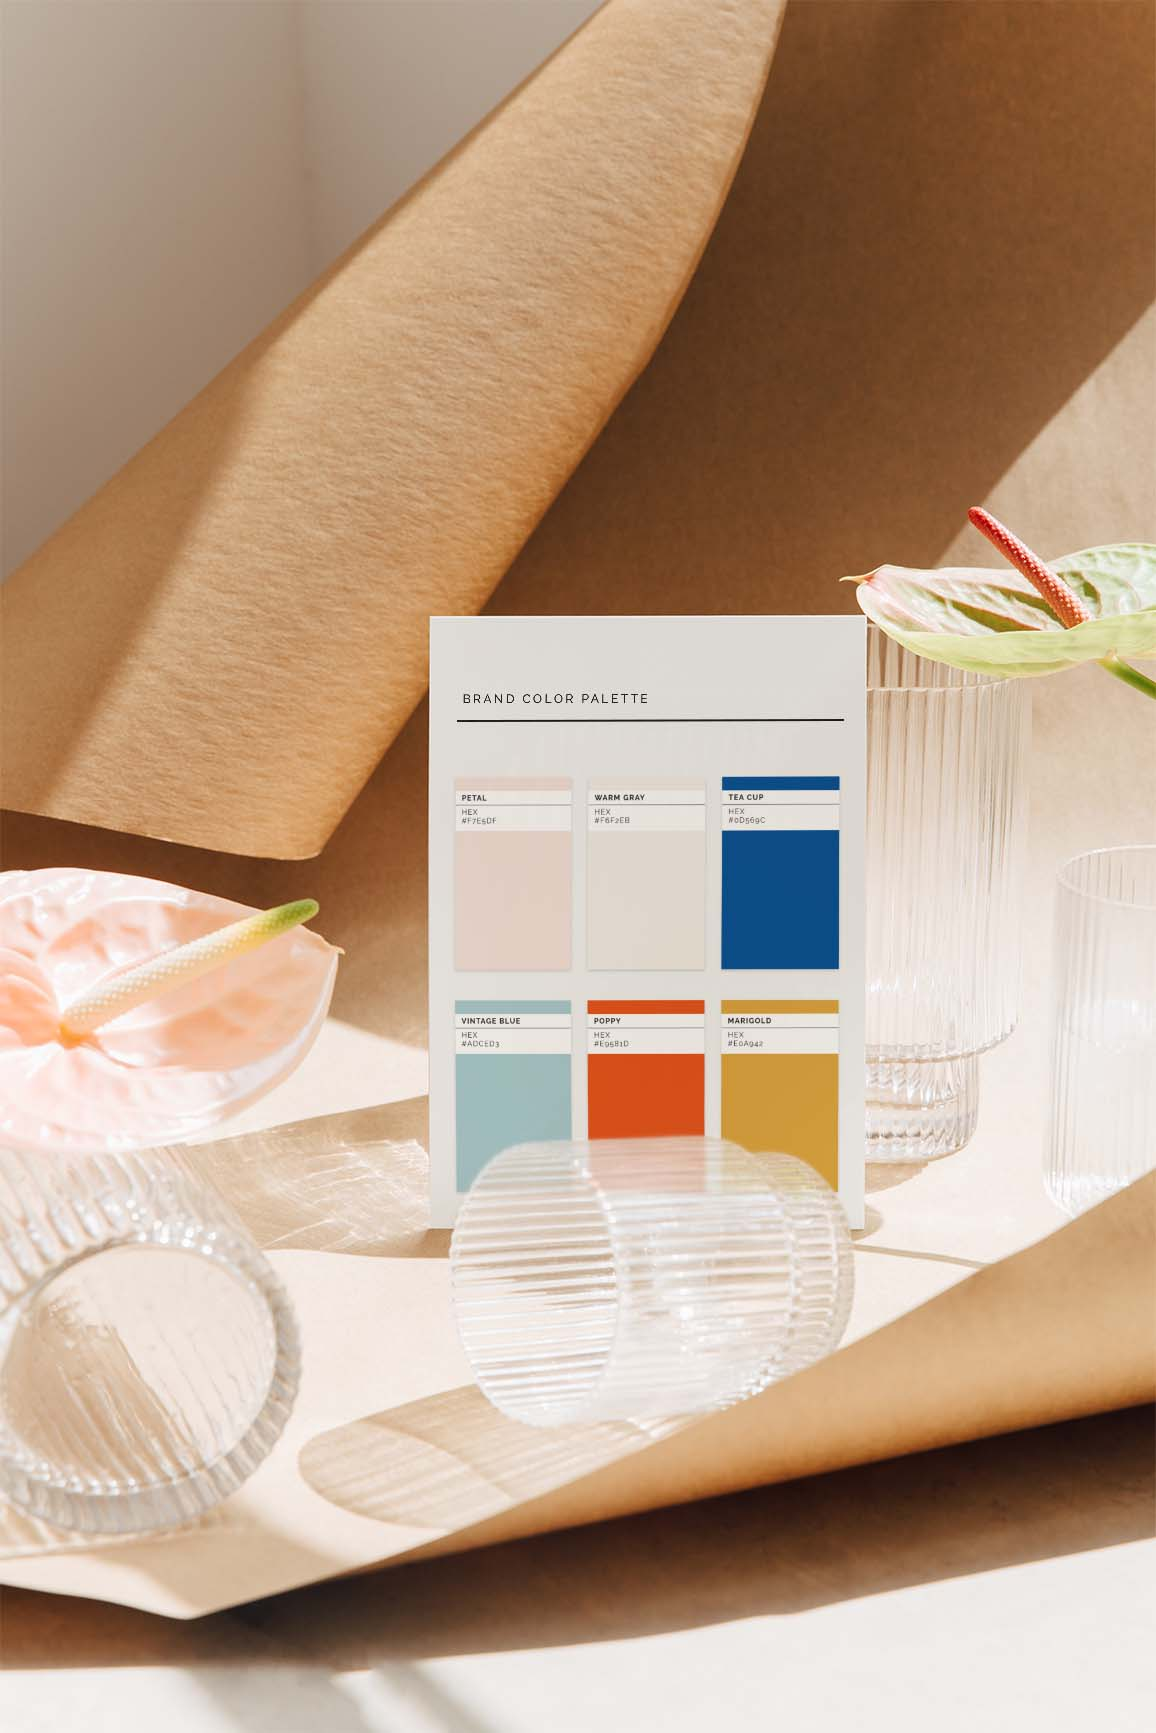 Brand color palette swatch balanced with fluted glassware and flowers.